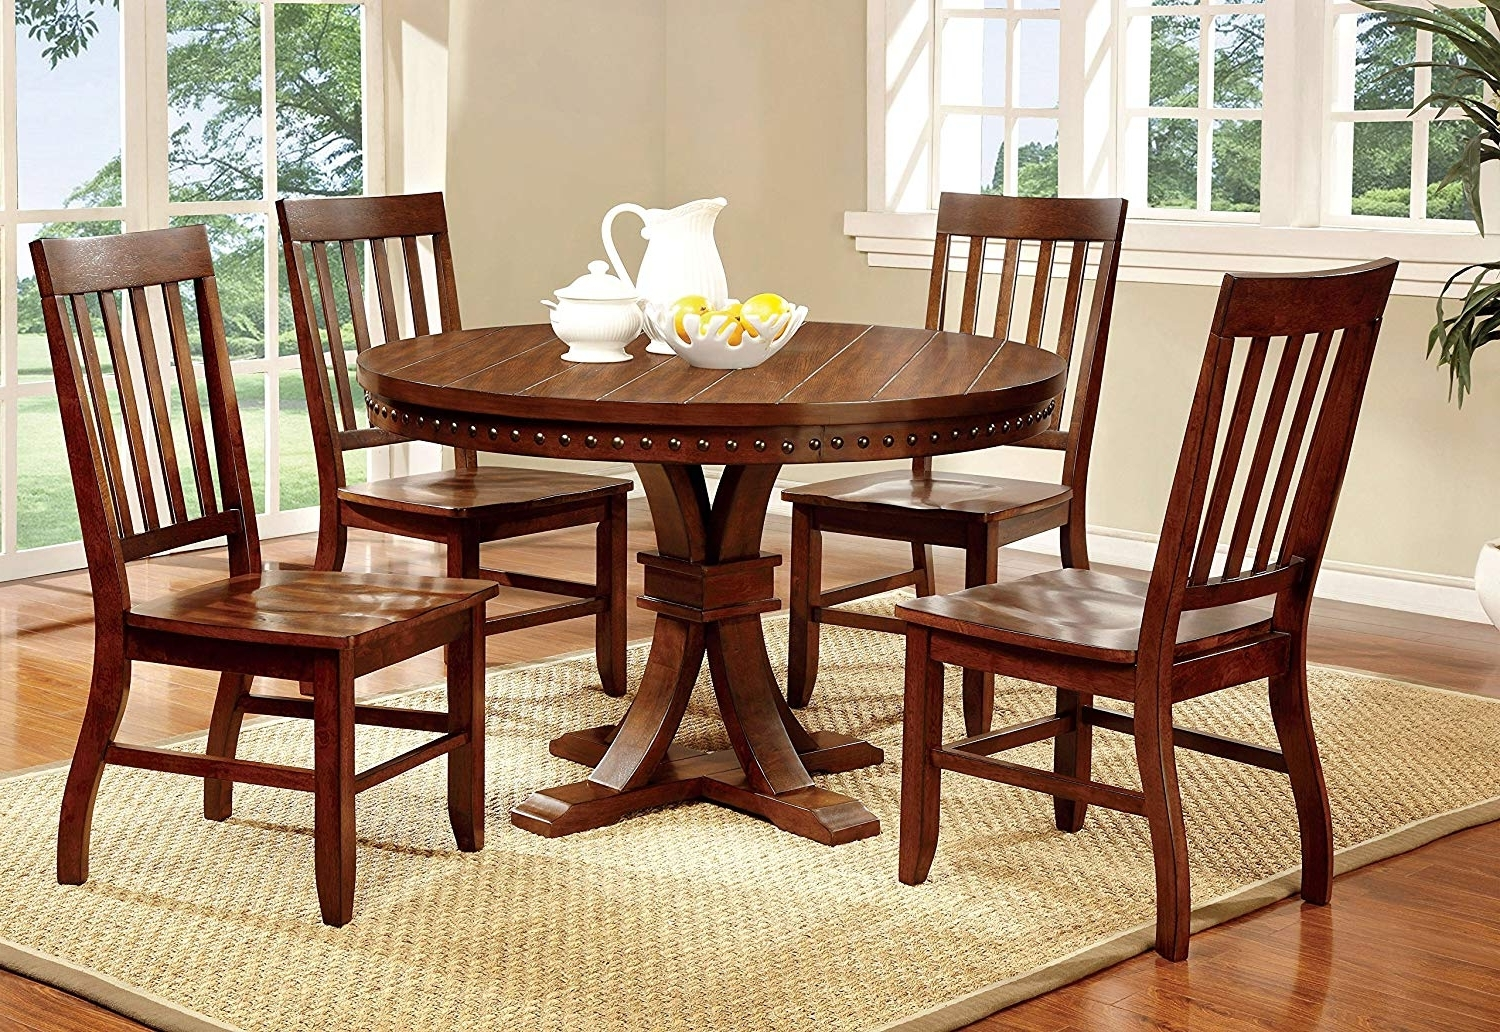 Widely Used Dining Tables Sets Throughout Amazon – Furniture Of America Castile 5 Piece Transitional Round (View 25 of 25)